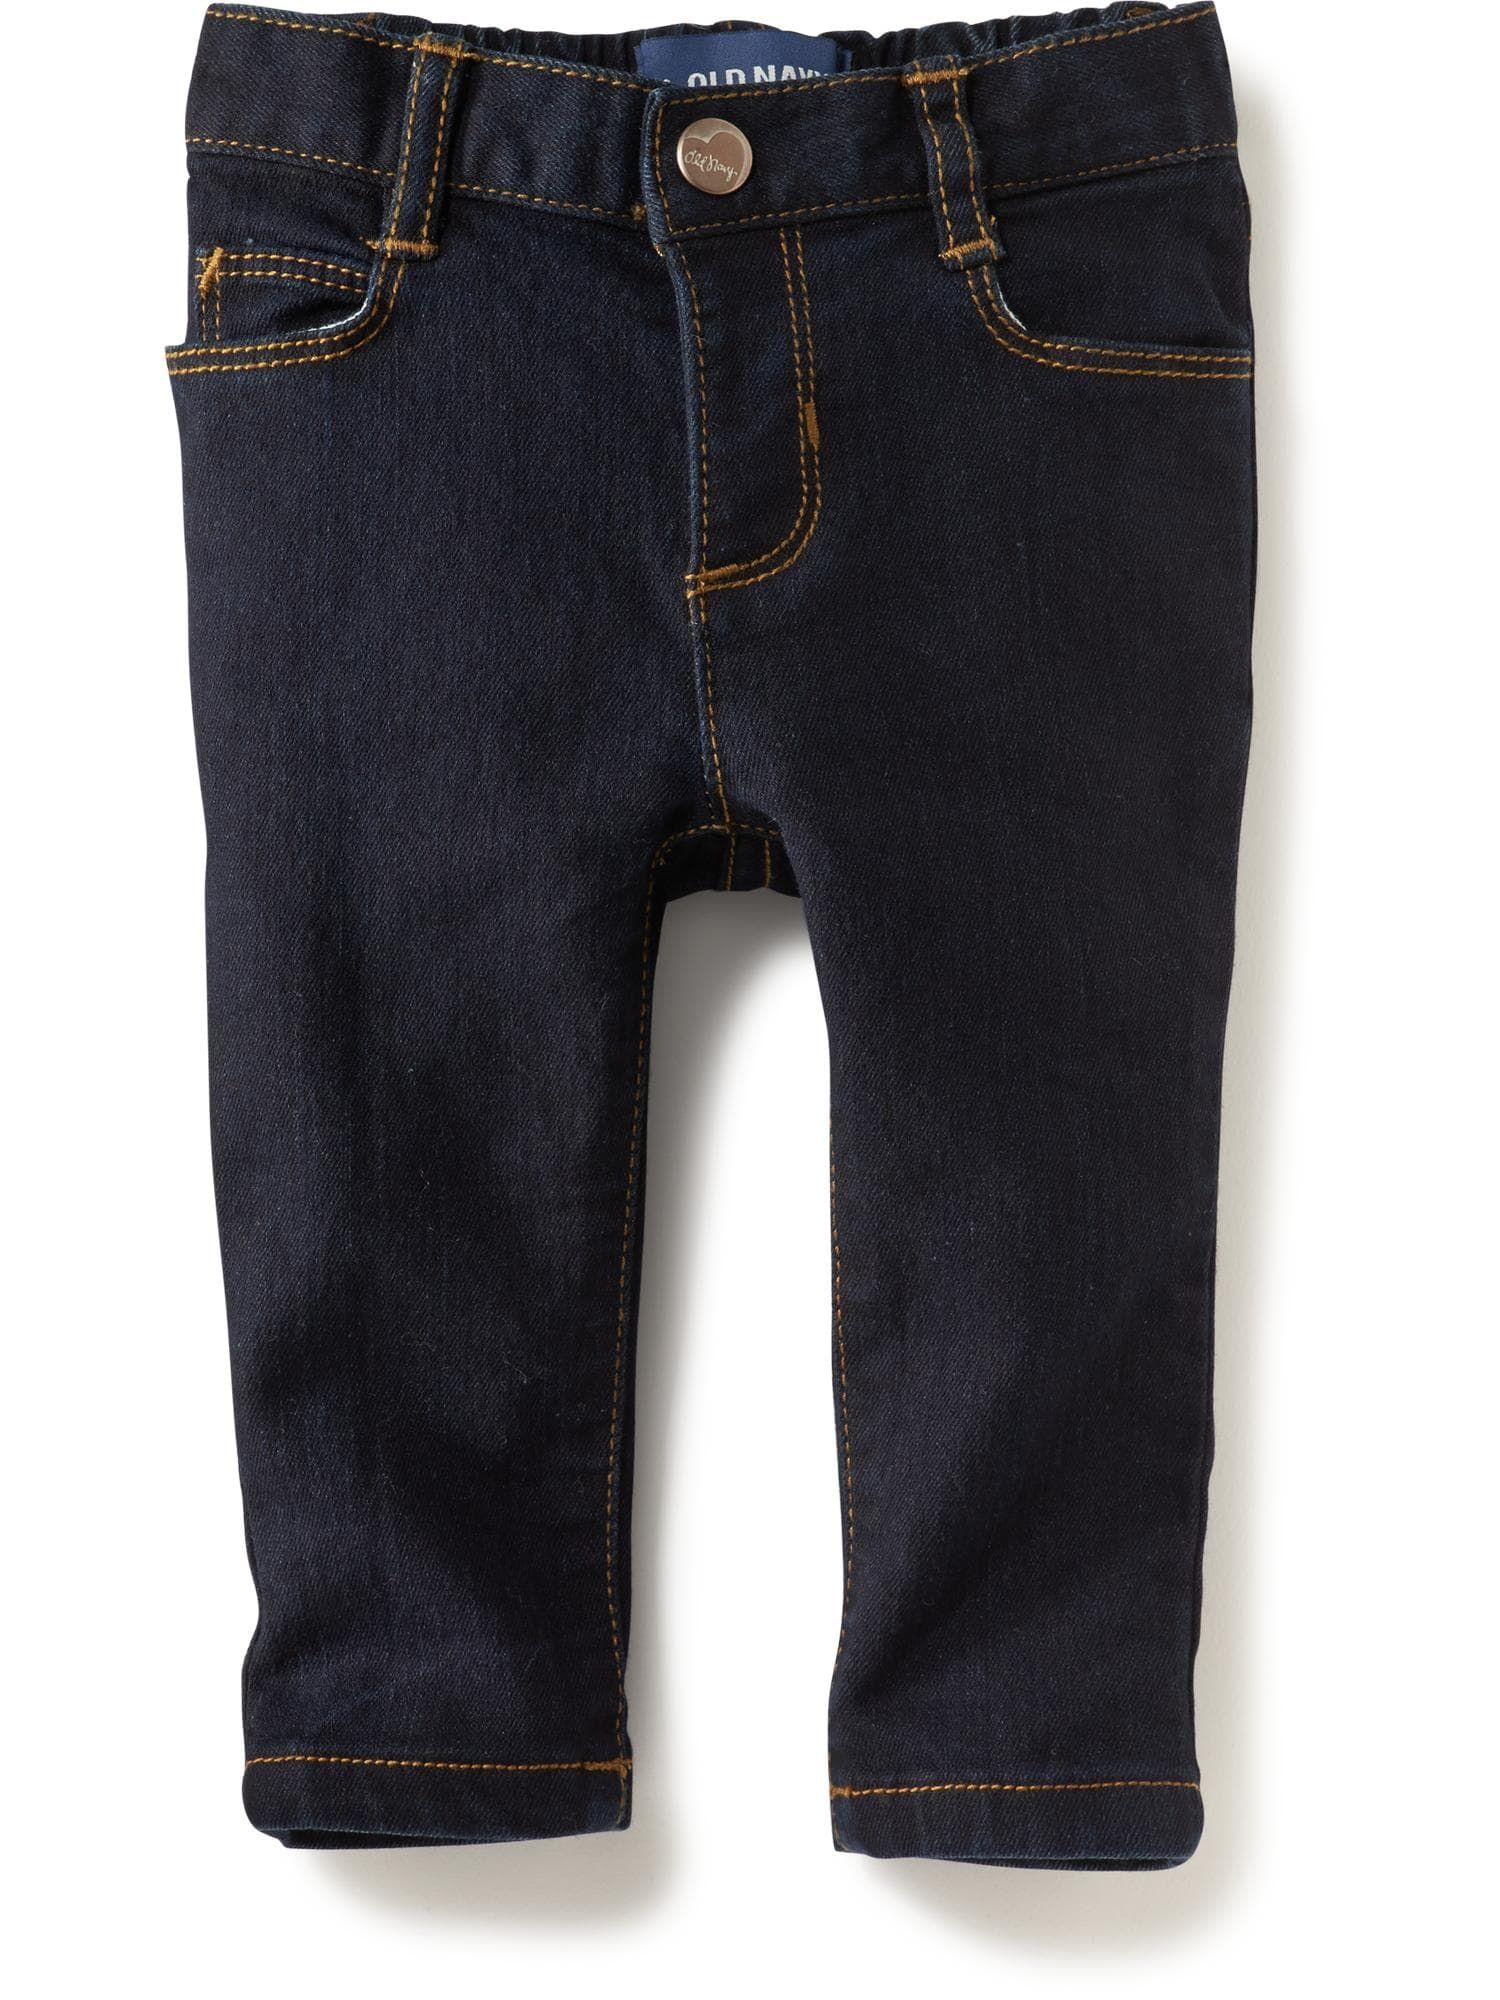 885ff0895f239 Skinny Jeans for Baby | Emily gifts | Old navy skinny jeans, Baby ...